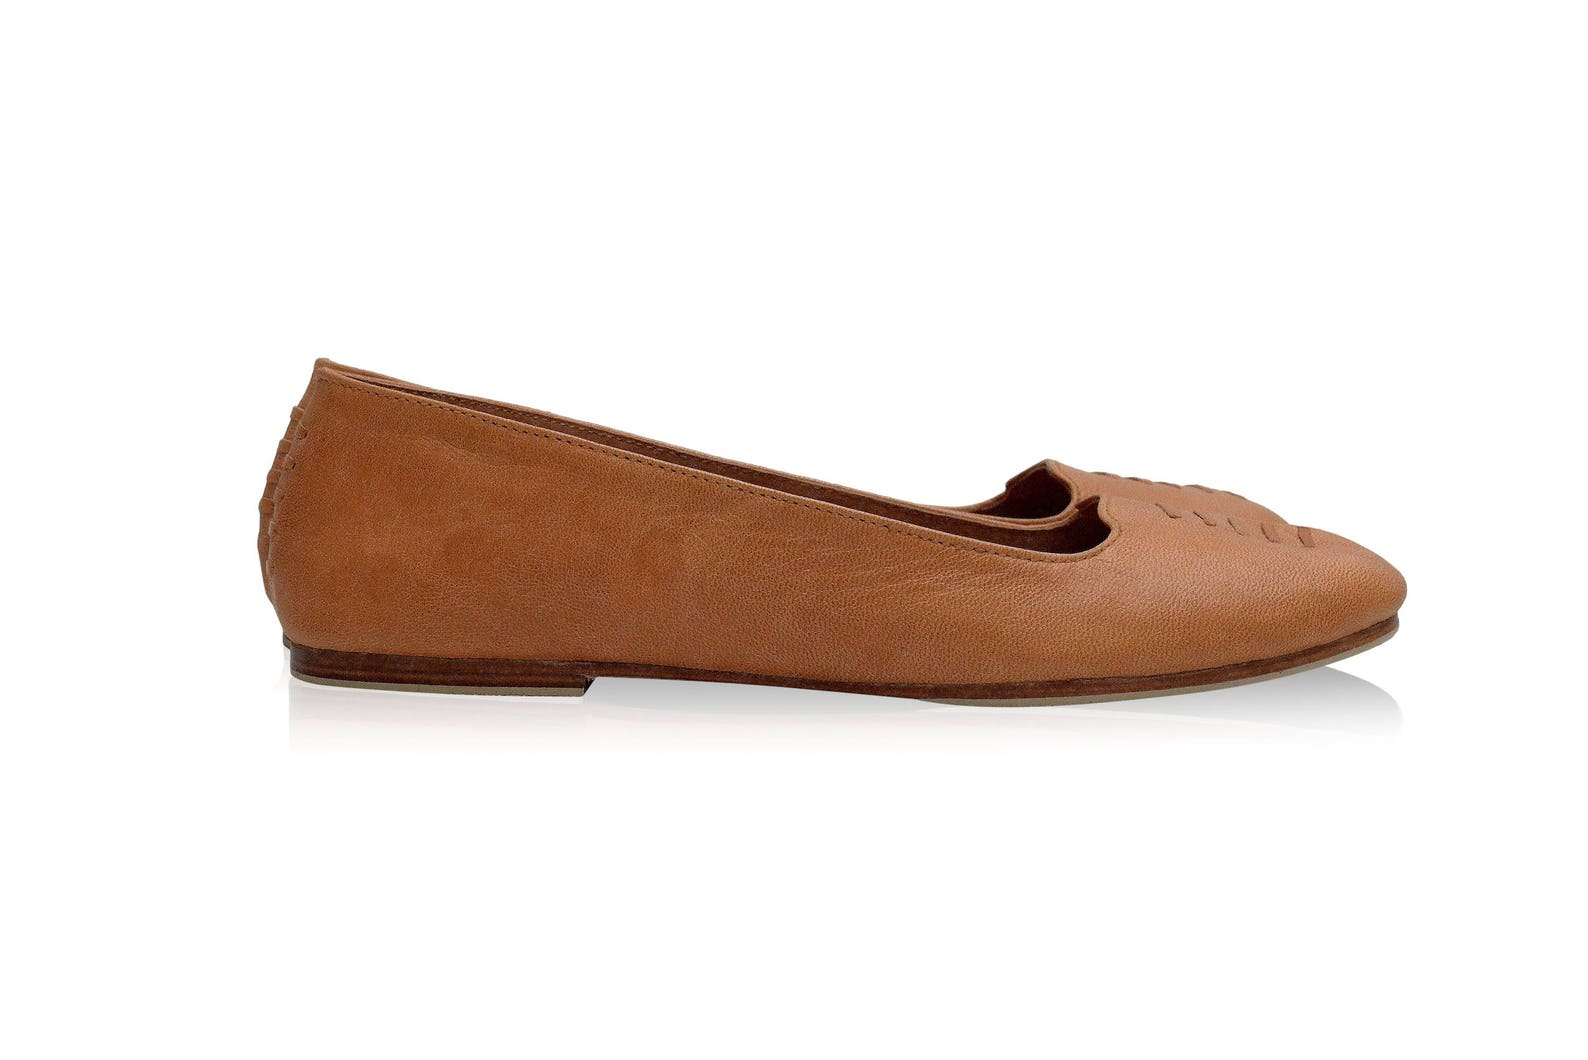 luna. leather flats / women shoes / leather flat shoes / women flats / leather ballet flats. sizes 35-43. available in different